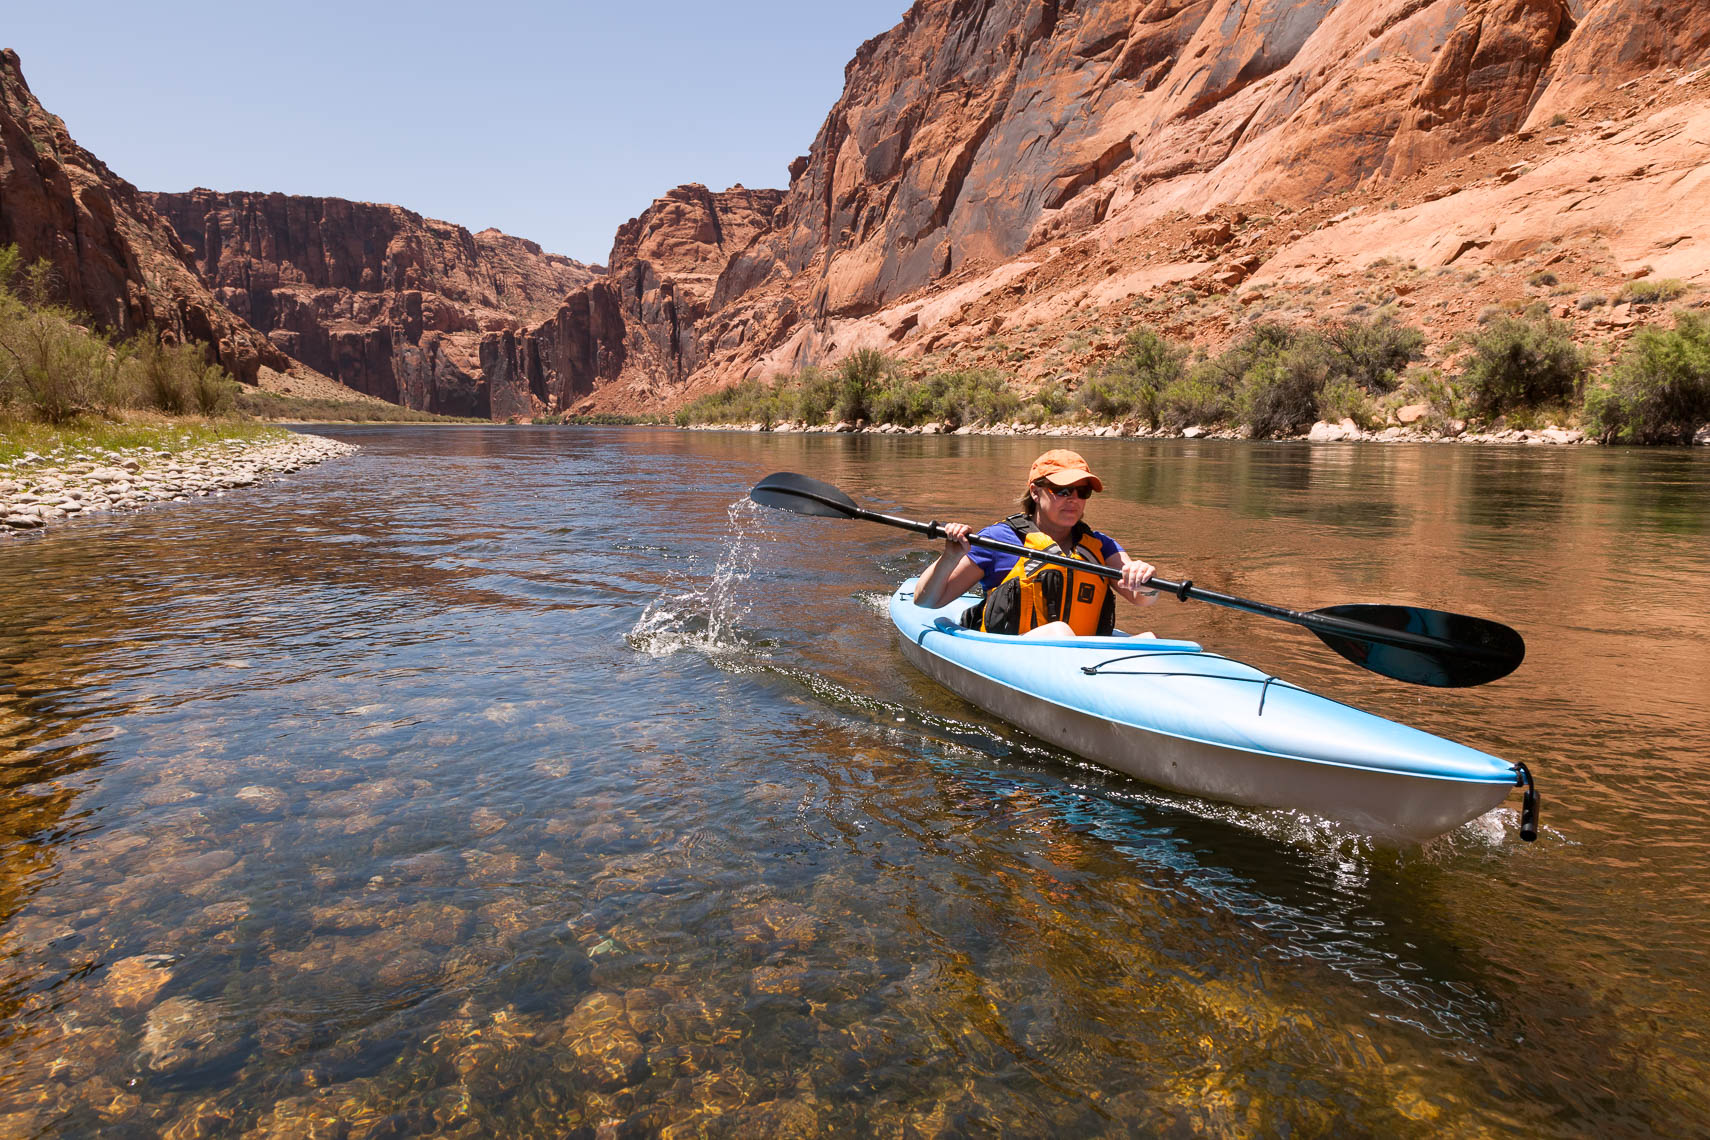 Jim_David_Photo_3244-Edit_Glen_Canyon_NRA_Colorado_River